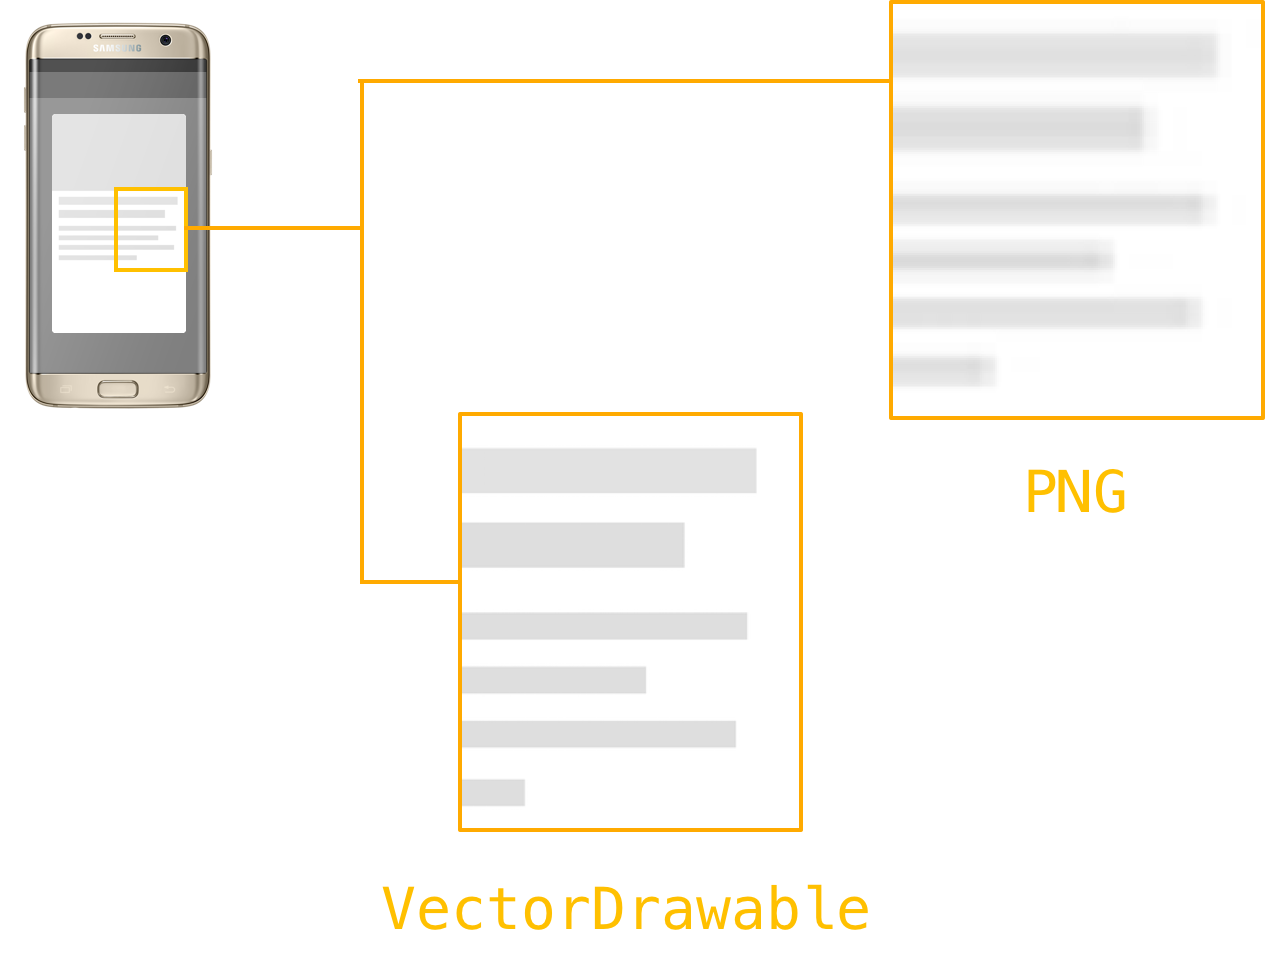 Android drawable png. Optimizing the performance of